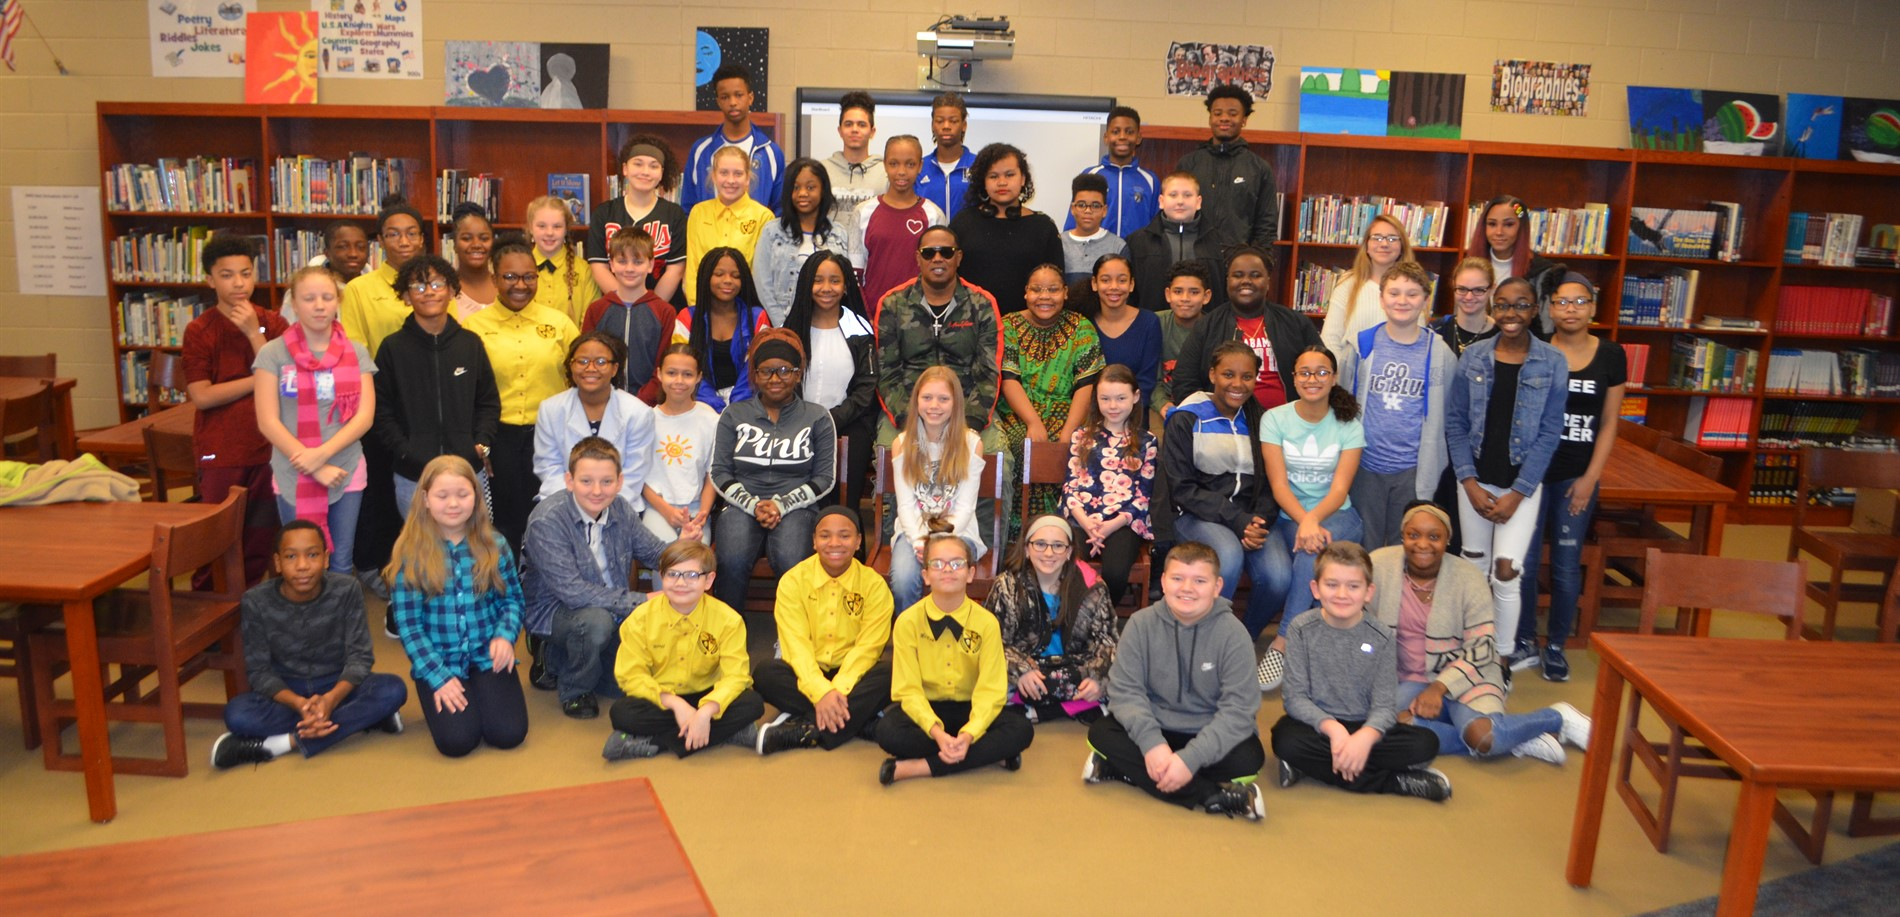 Entertainer Master P visited with some North Middle School students before a Black History Month event.